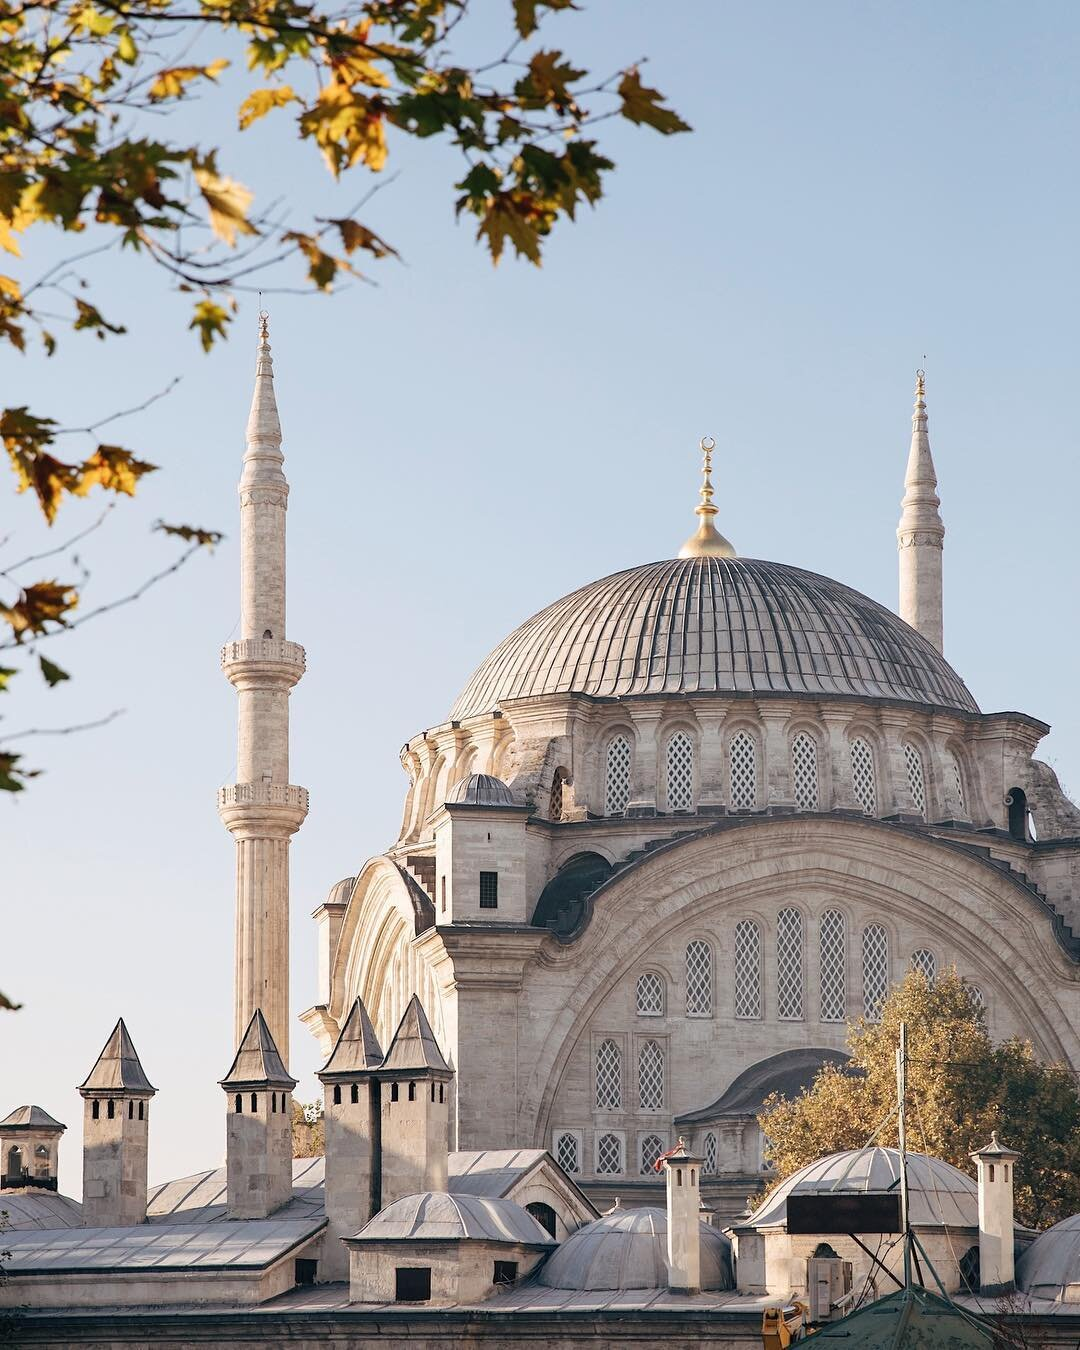 The Hagia Sophia in Istanbul, Turkey. A former church that is now a mosque. Photo: @inbedwith.me